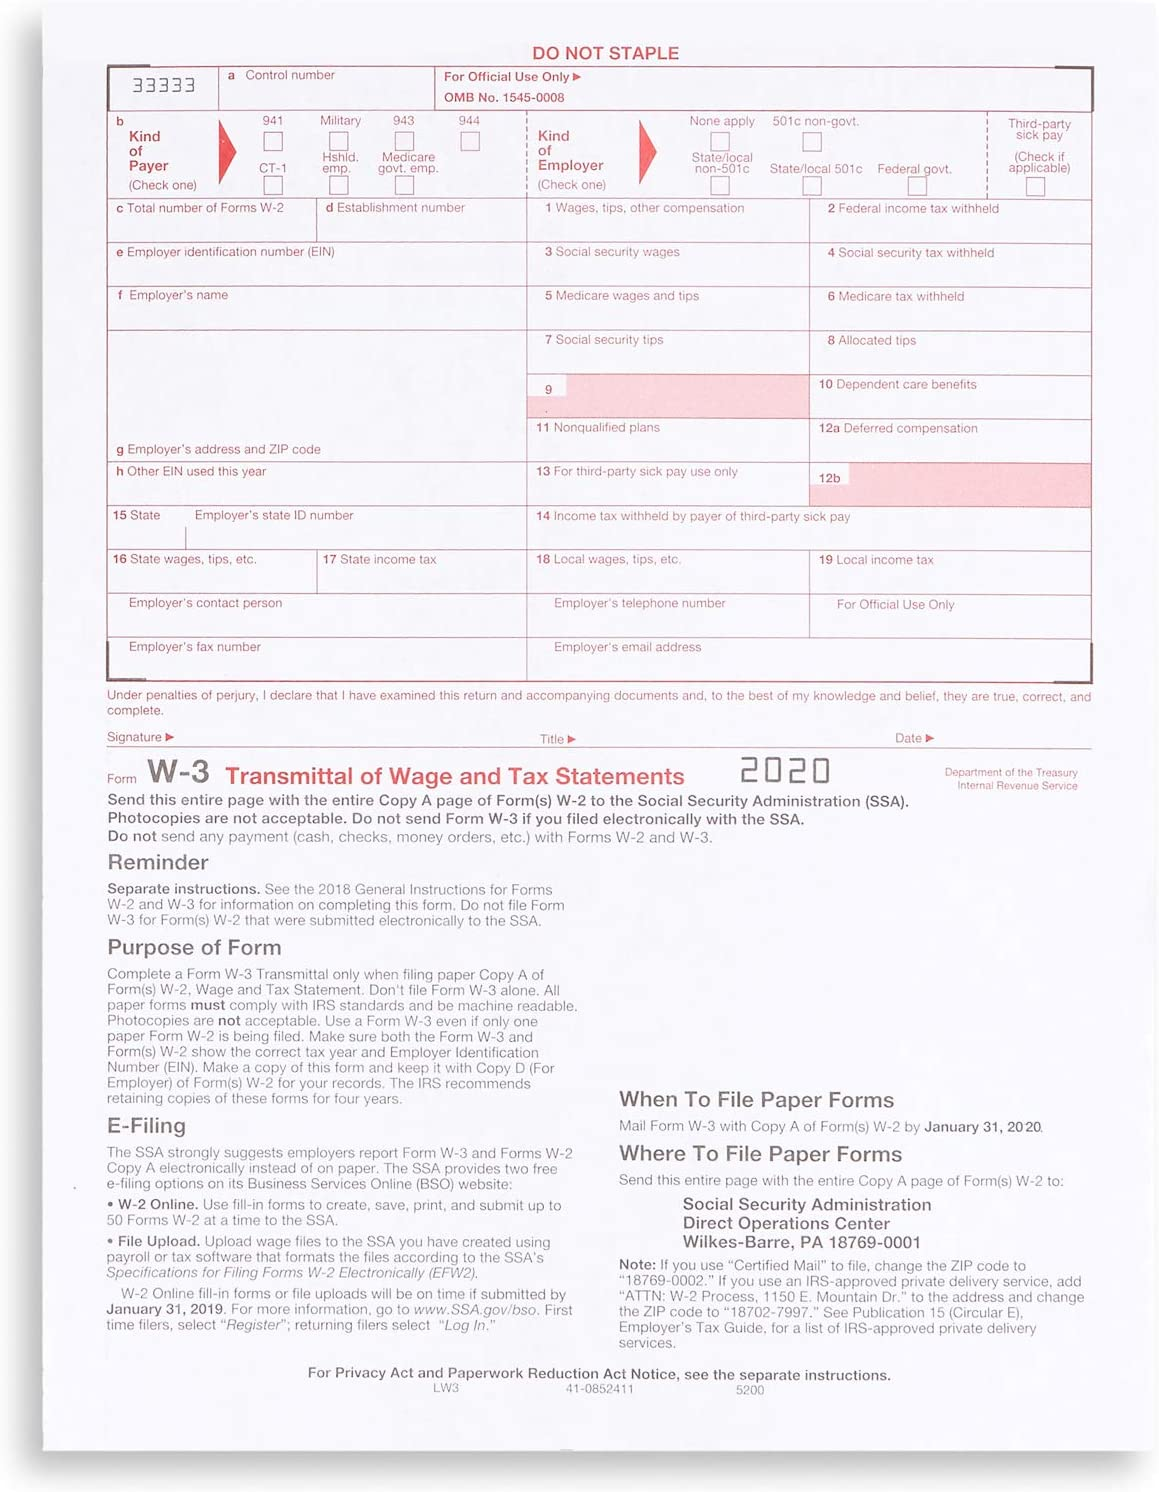 W3 Transmittal Tax Forms 2020, 10 Form W-3 Summary Laser Forms for Transmittal of Wage and Tax Statements, W-3 Forms, Compatible with QuickBooks and Accounting Software, 10 Pack : Office Products